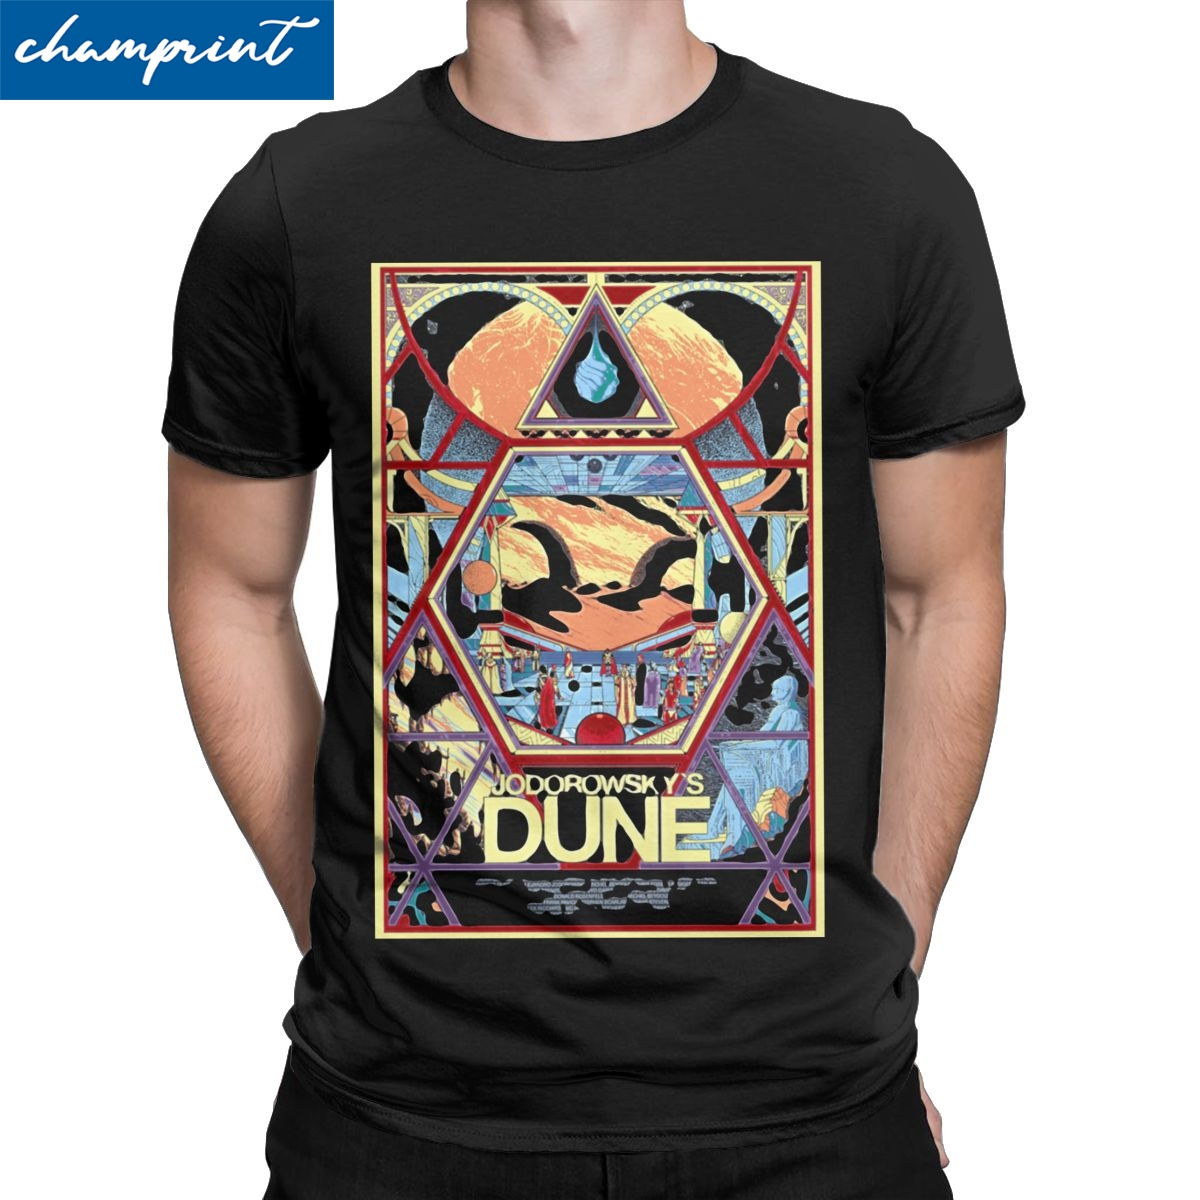 Jodorowsky's Dune Documentary Movie Poster T-Shirts for Men Creative Tee Shirt Round Neck Short Sleeve T Shirts Plus Size Tops image